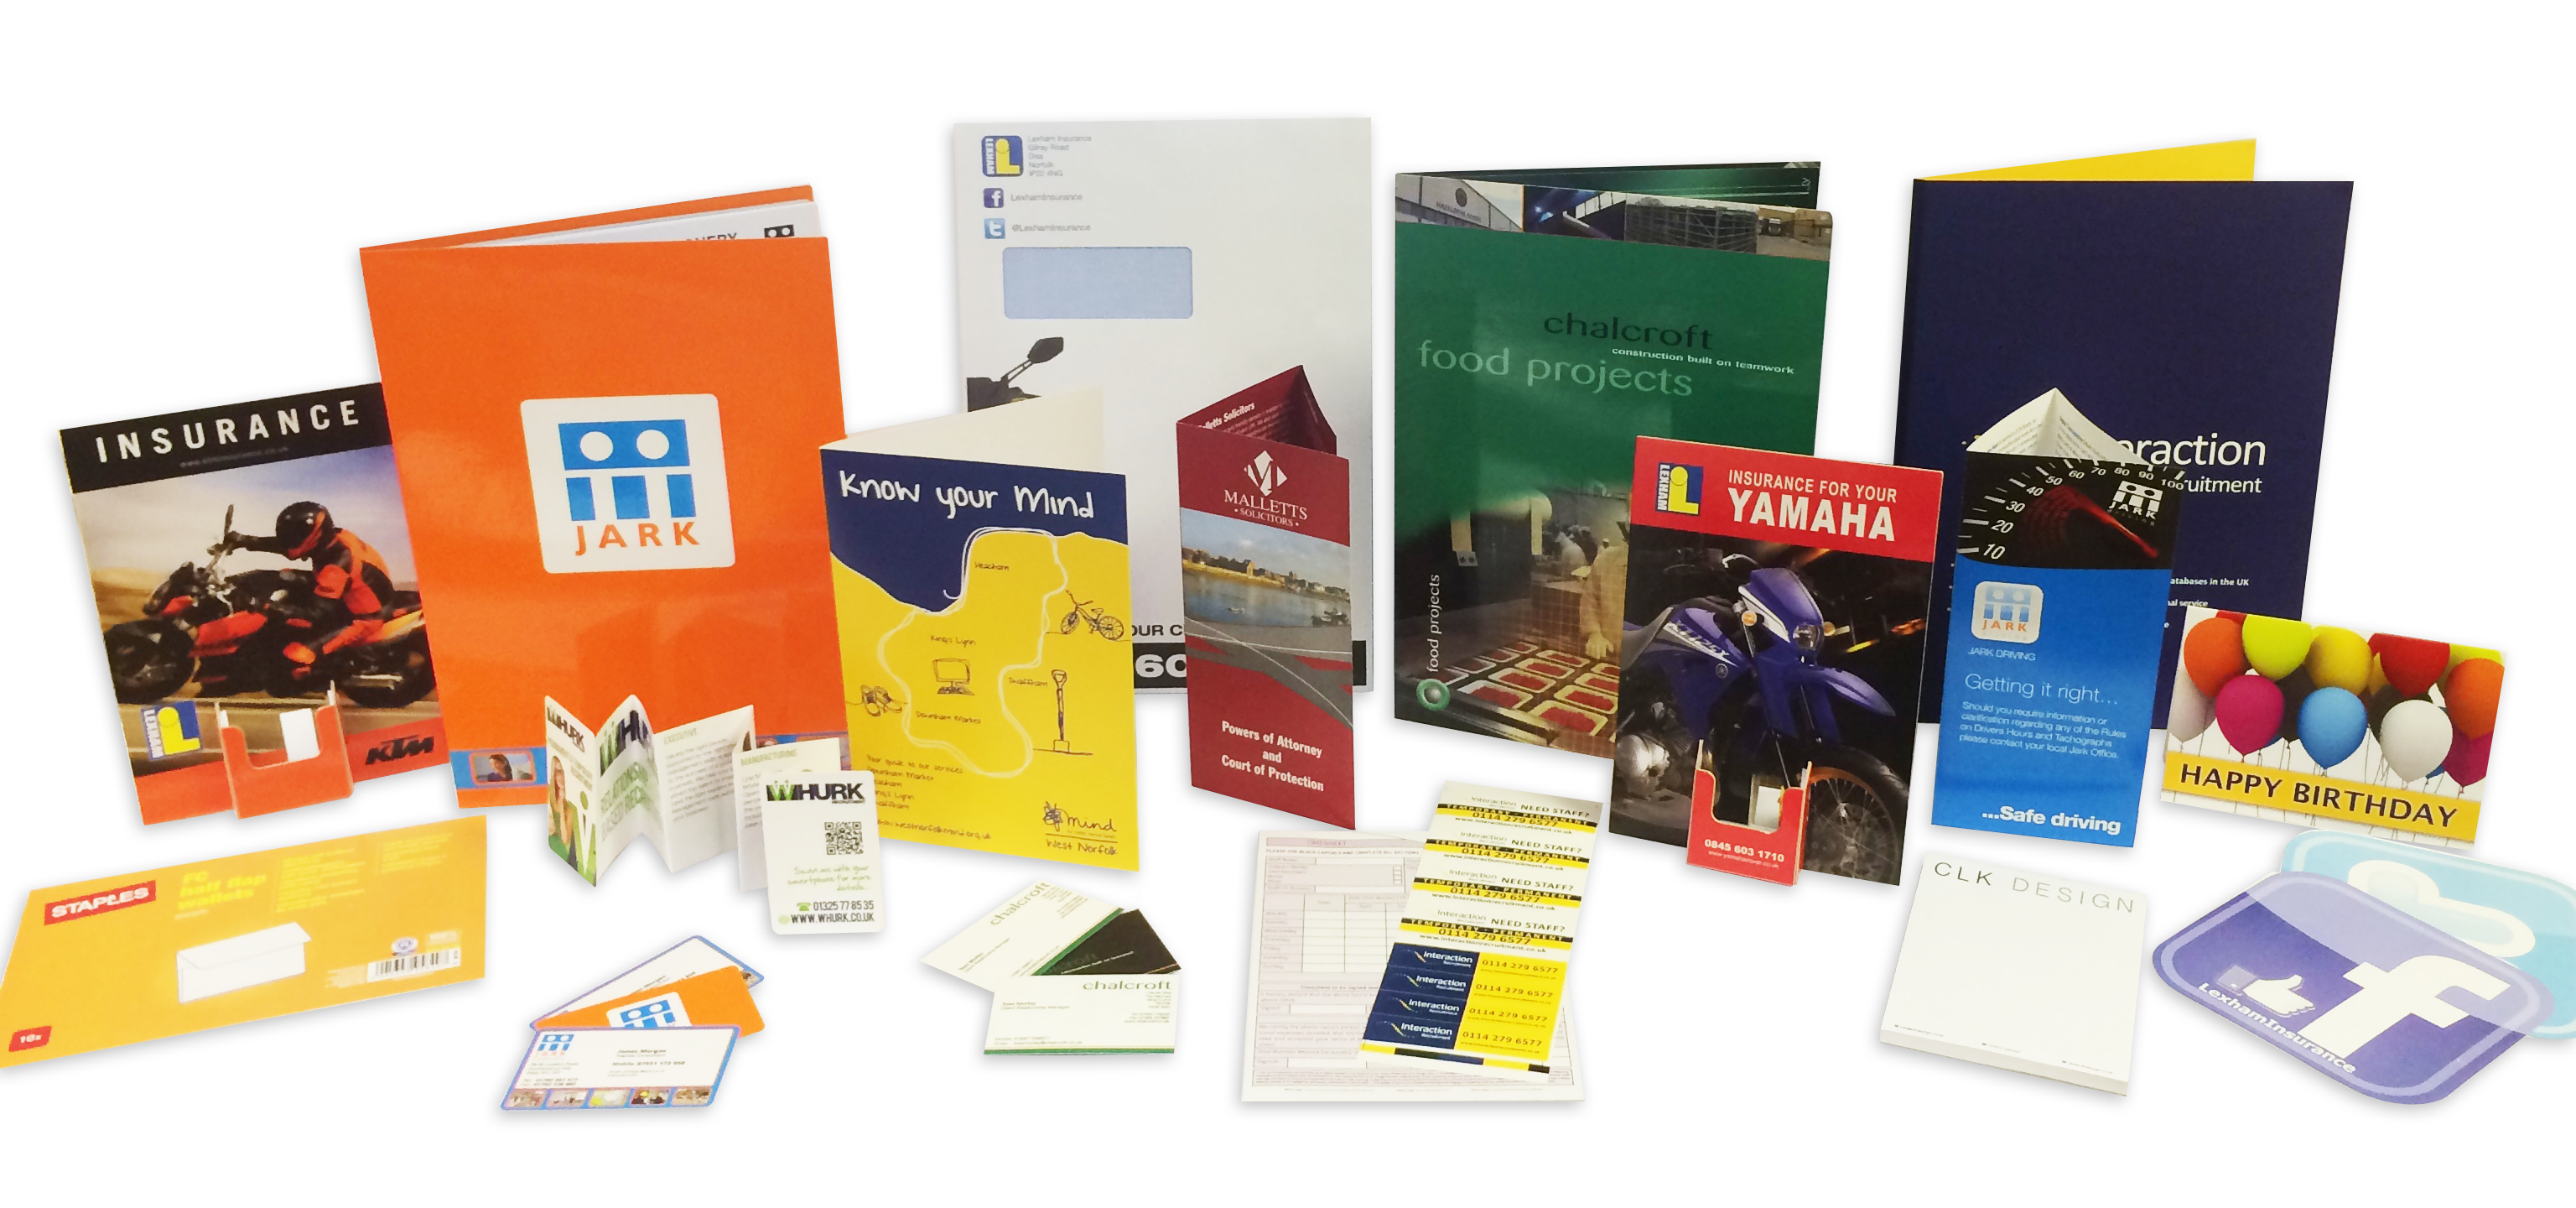 Sprint digital and lithographic printing service for Digital marketing materials